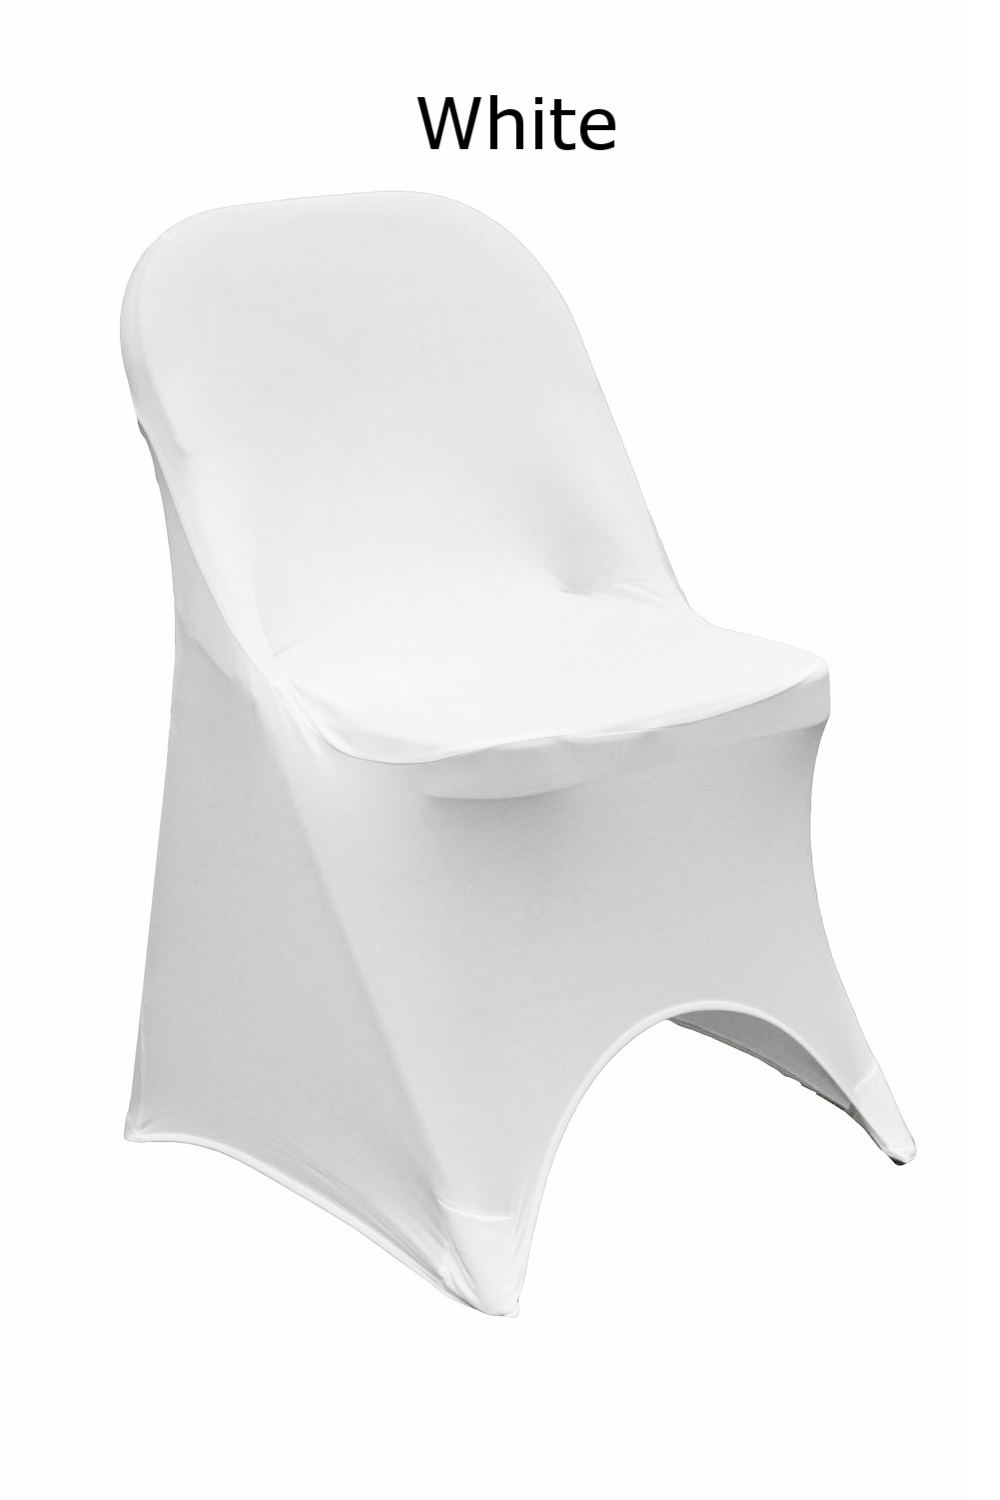 Chair Cover Stretch White.jpg